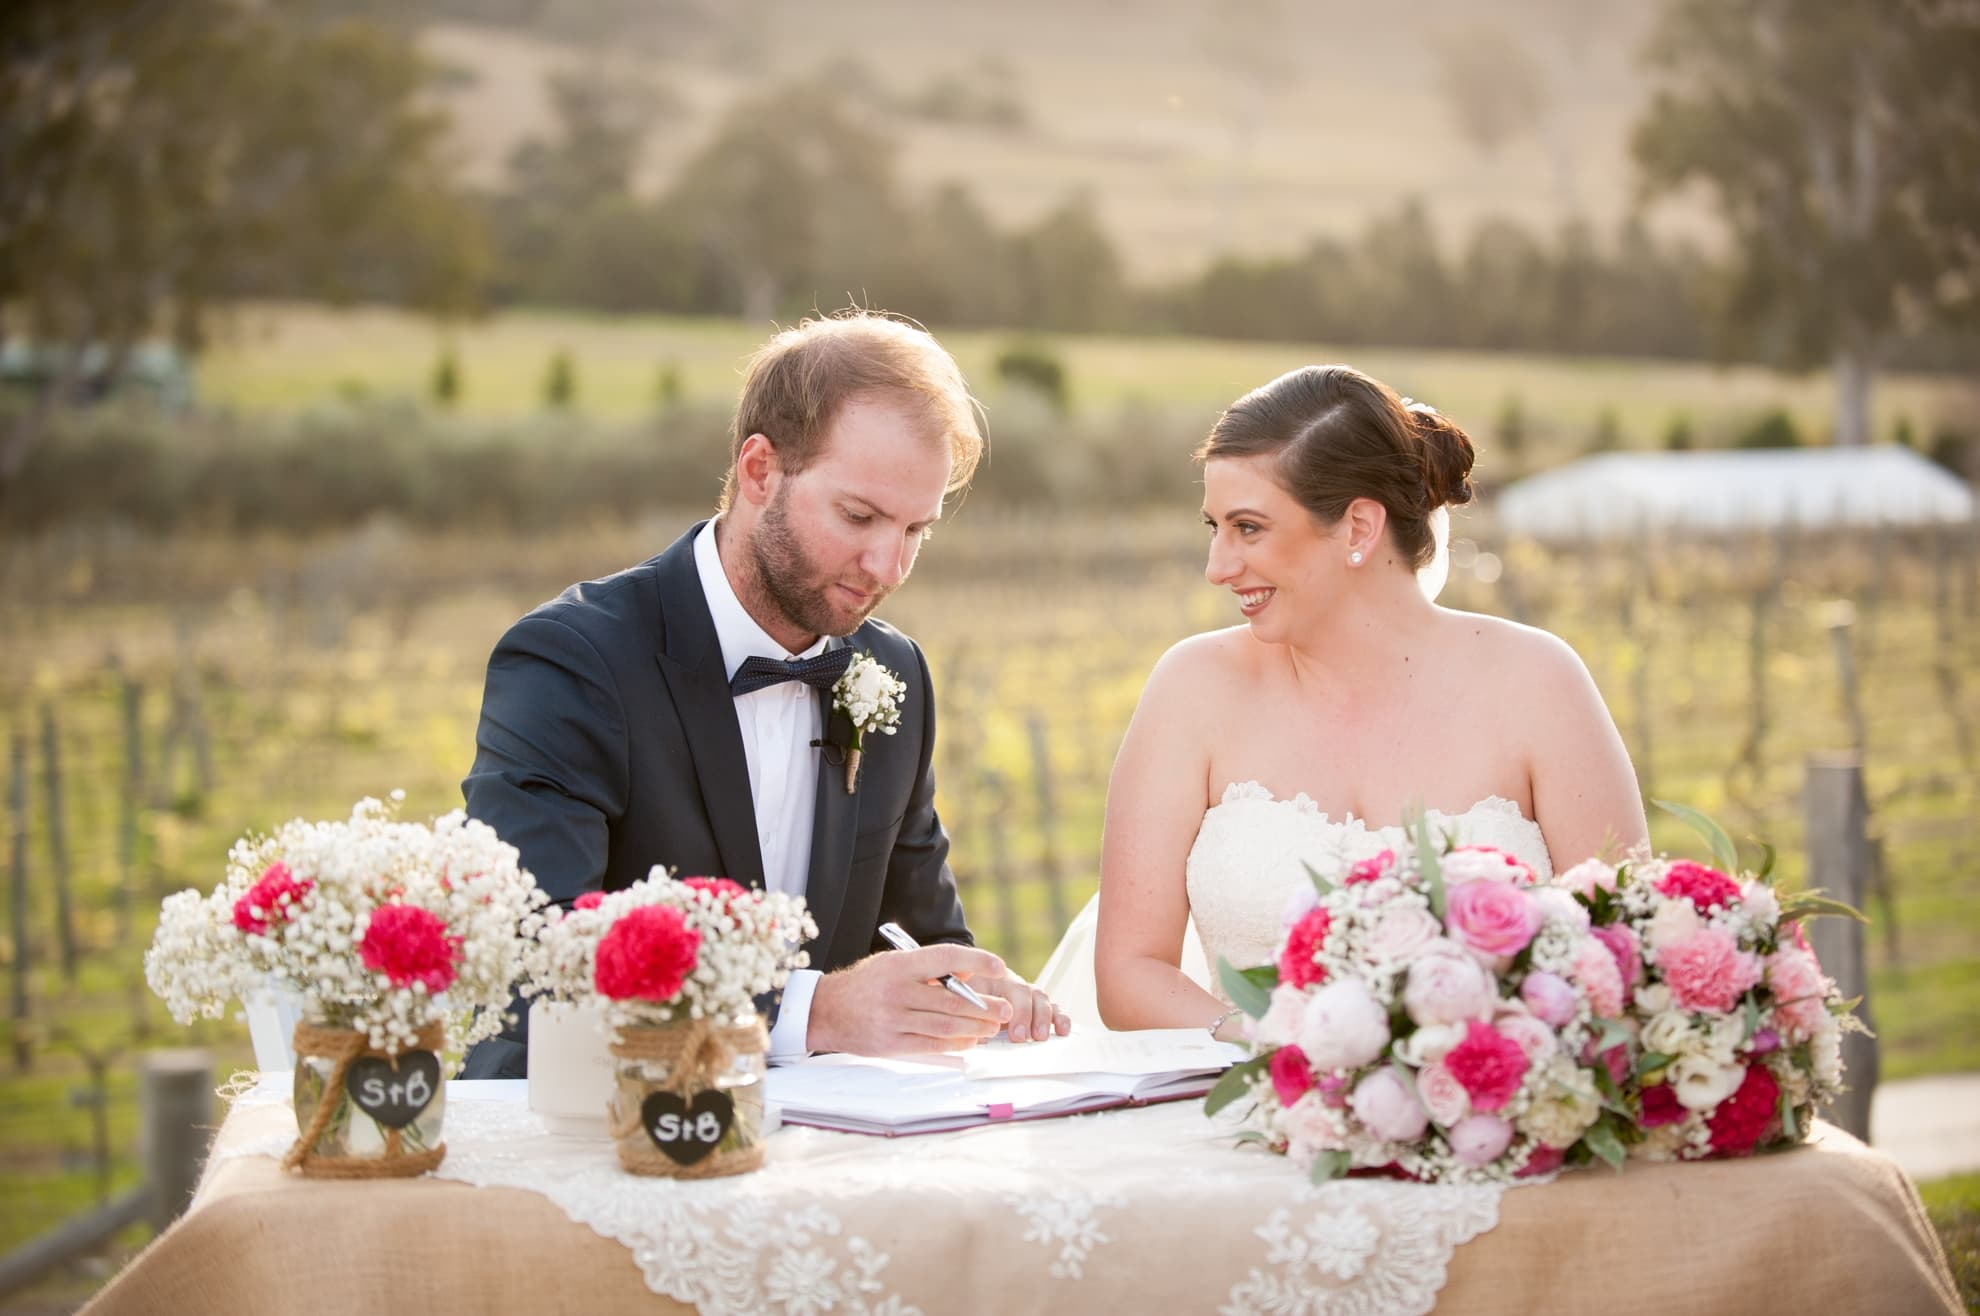 bride-and-groom-looking-at-each-other-smiling-signing-the-marriage-certificate